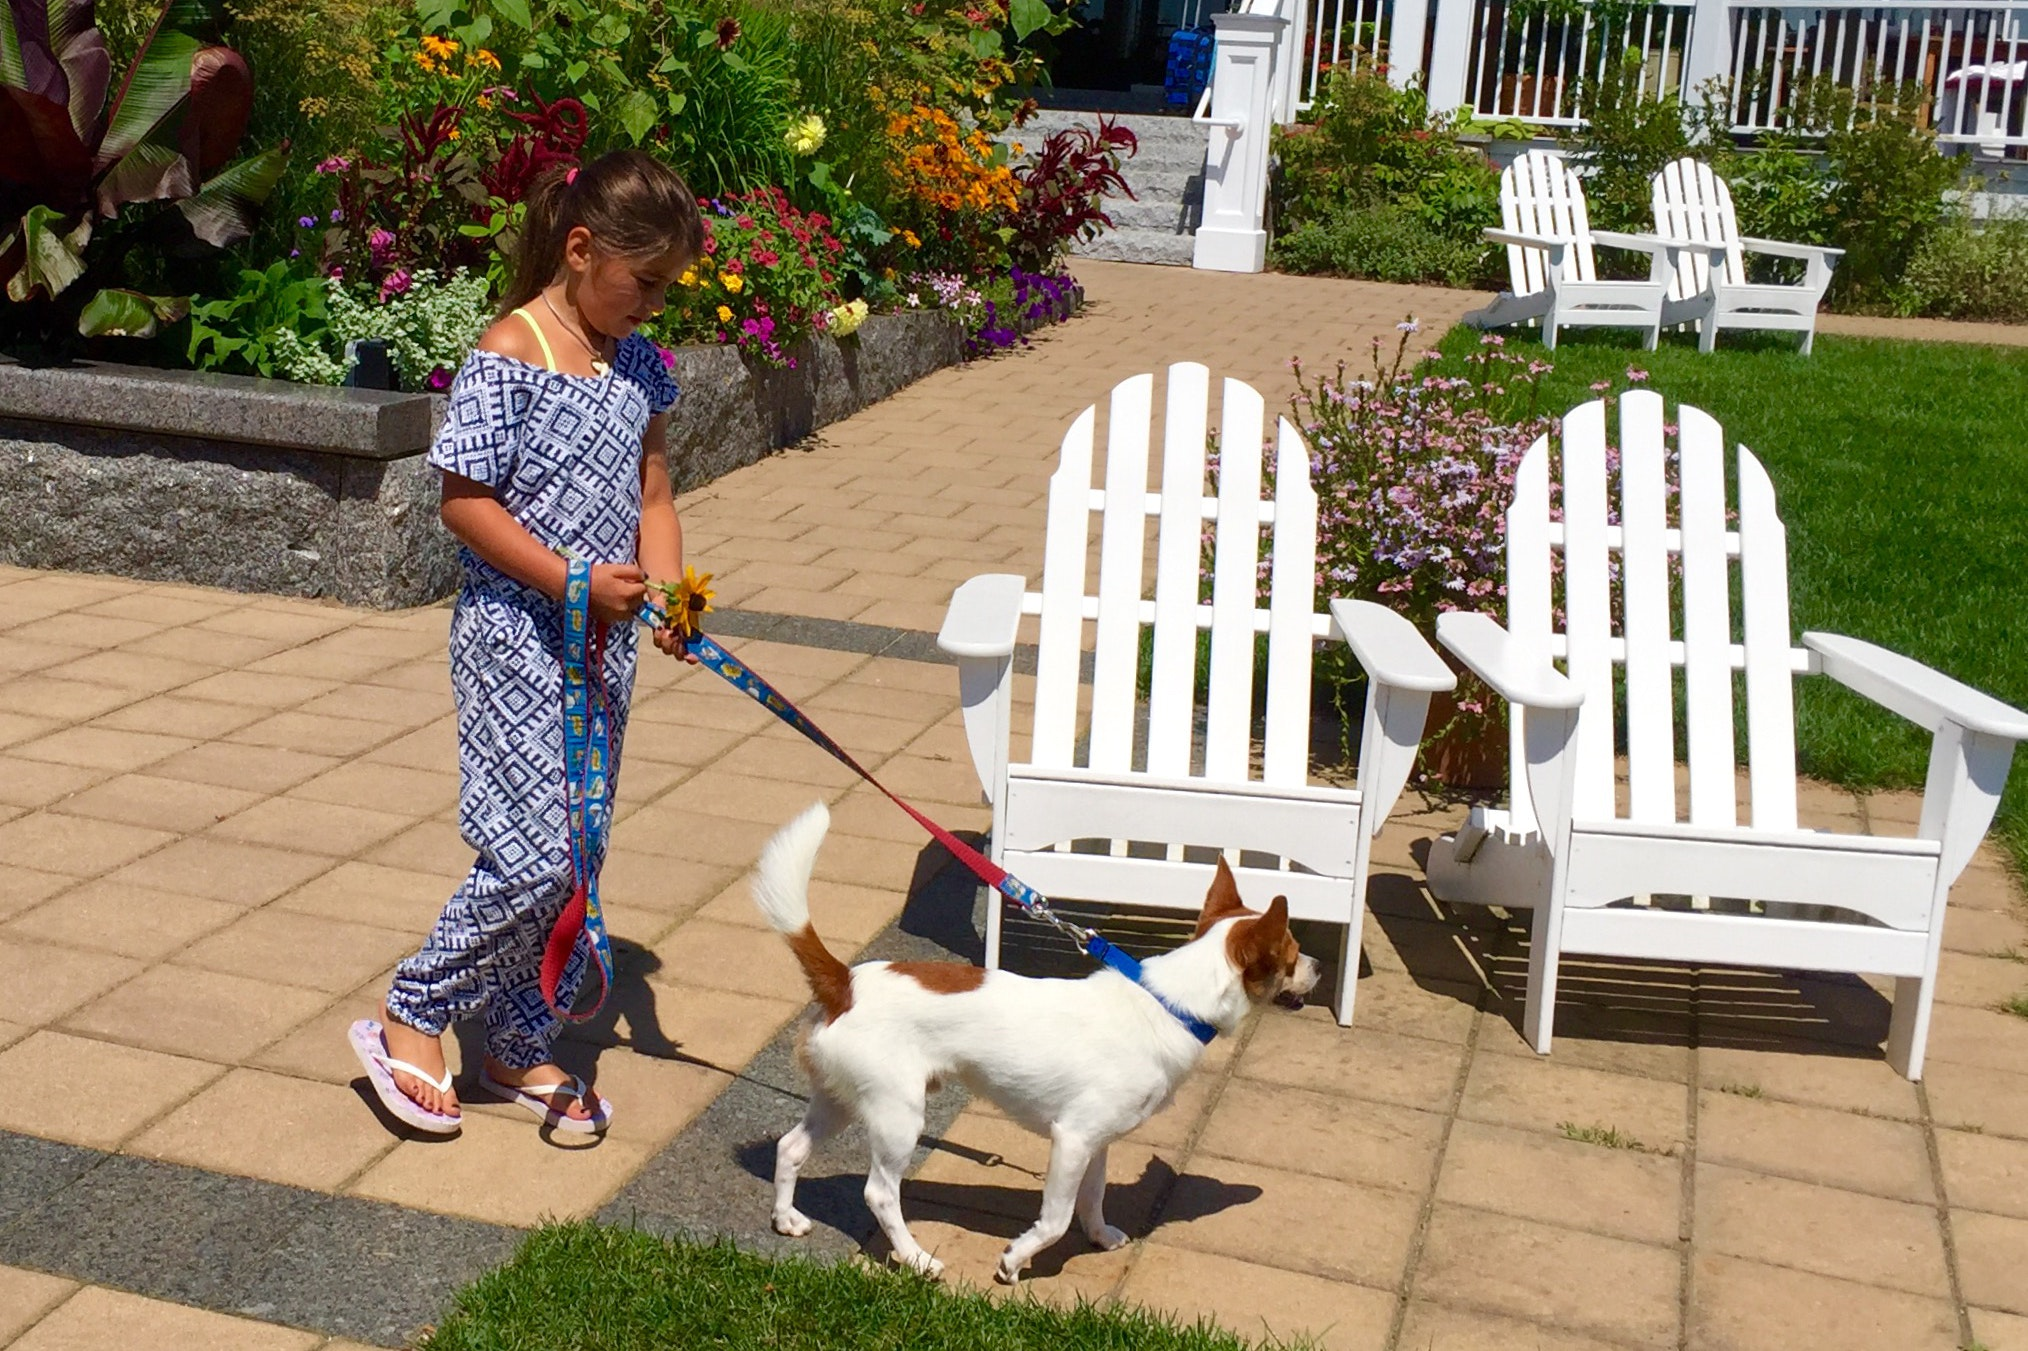 Guests are welcome to walk Inn by the Sea's resident foster dog.